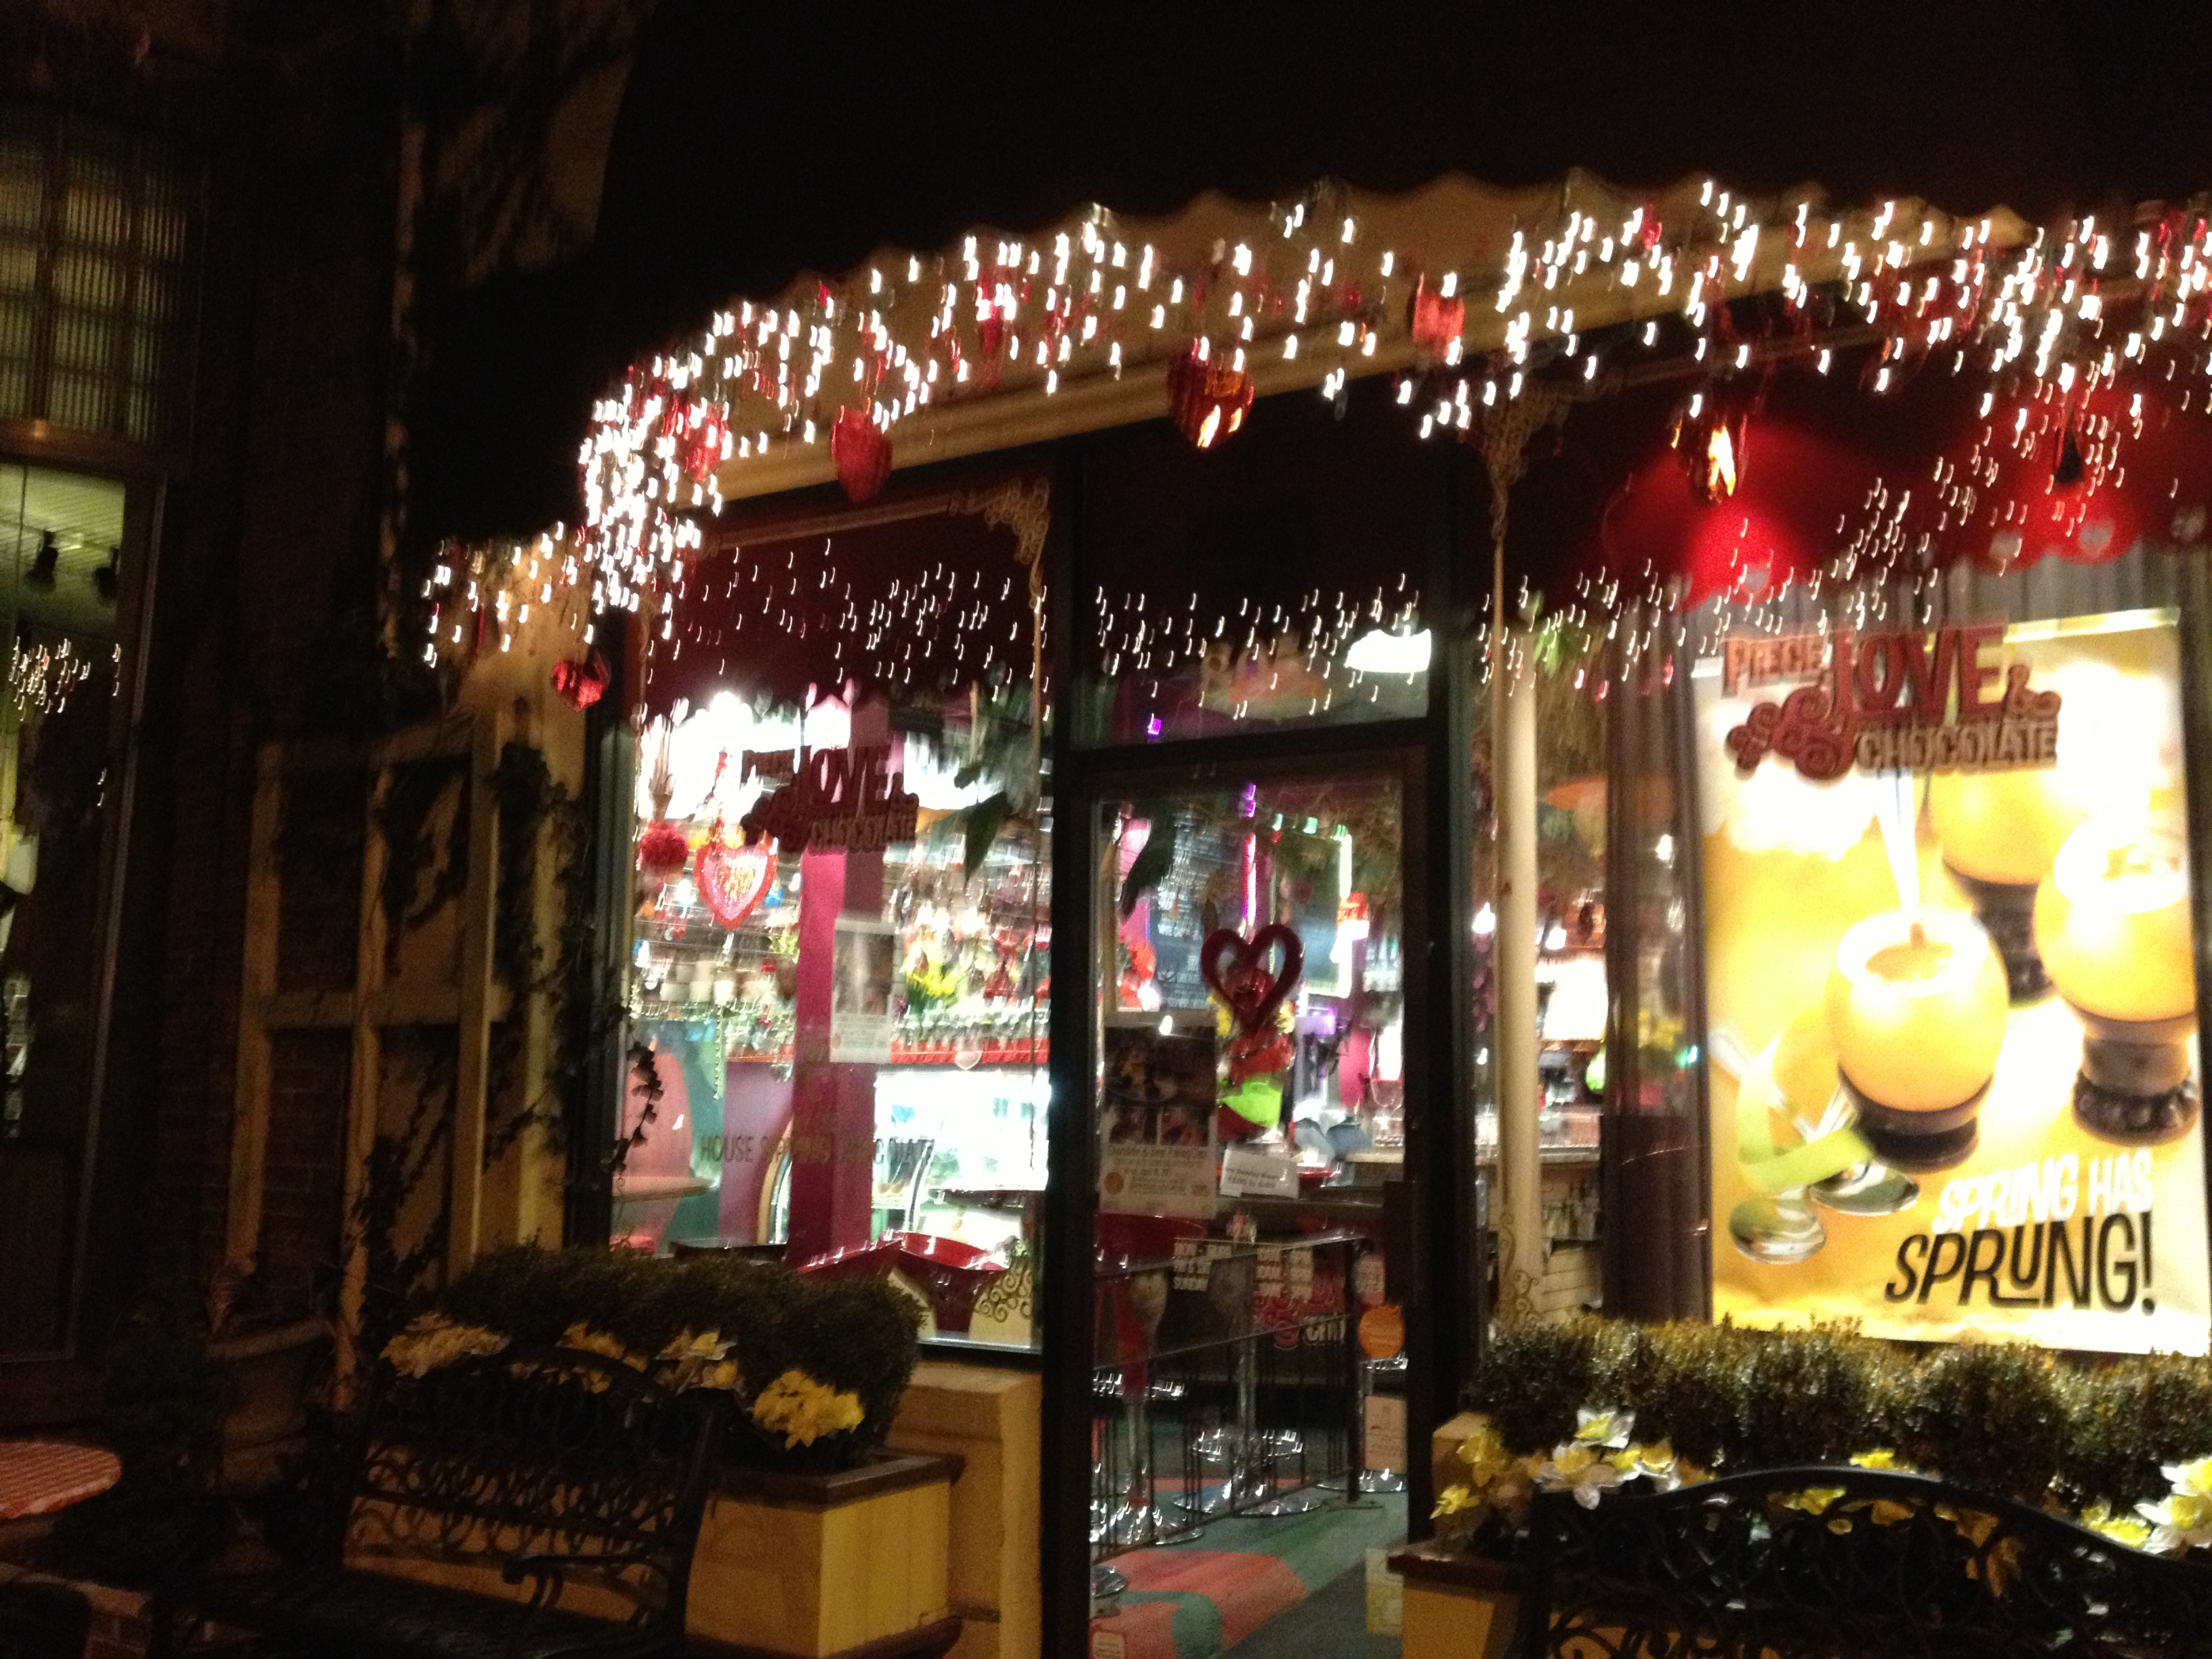 The outside of this adorable place...hard to see but they have little tables and chairs to sit at